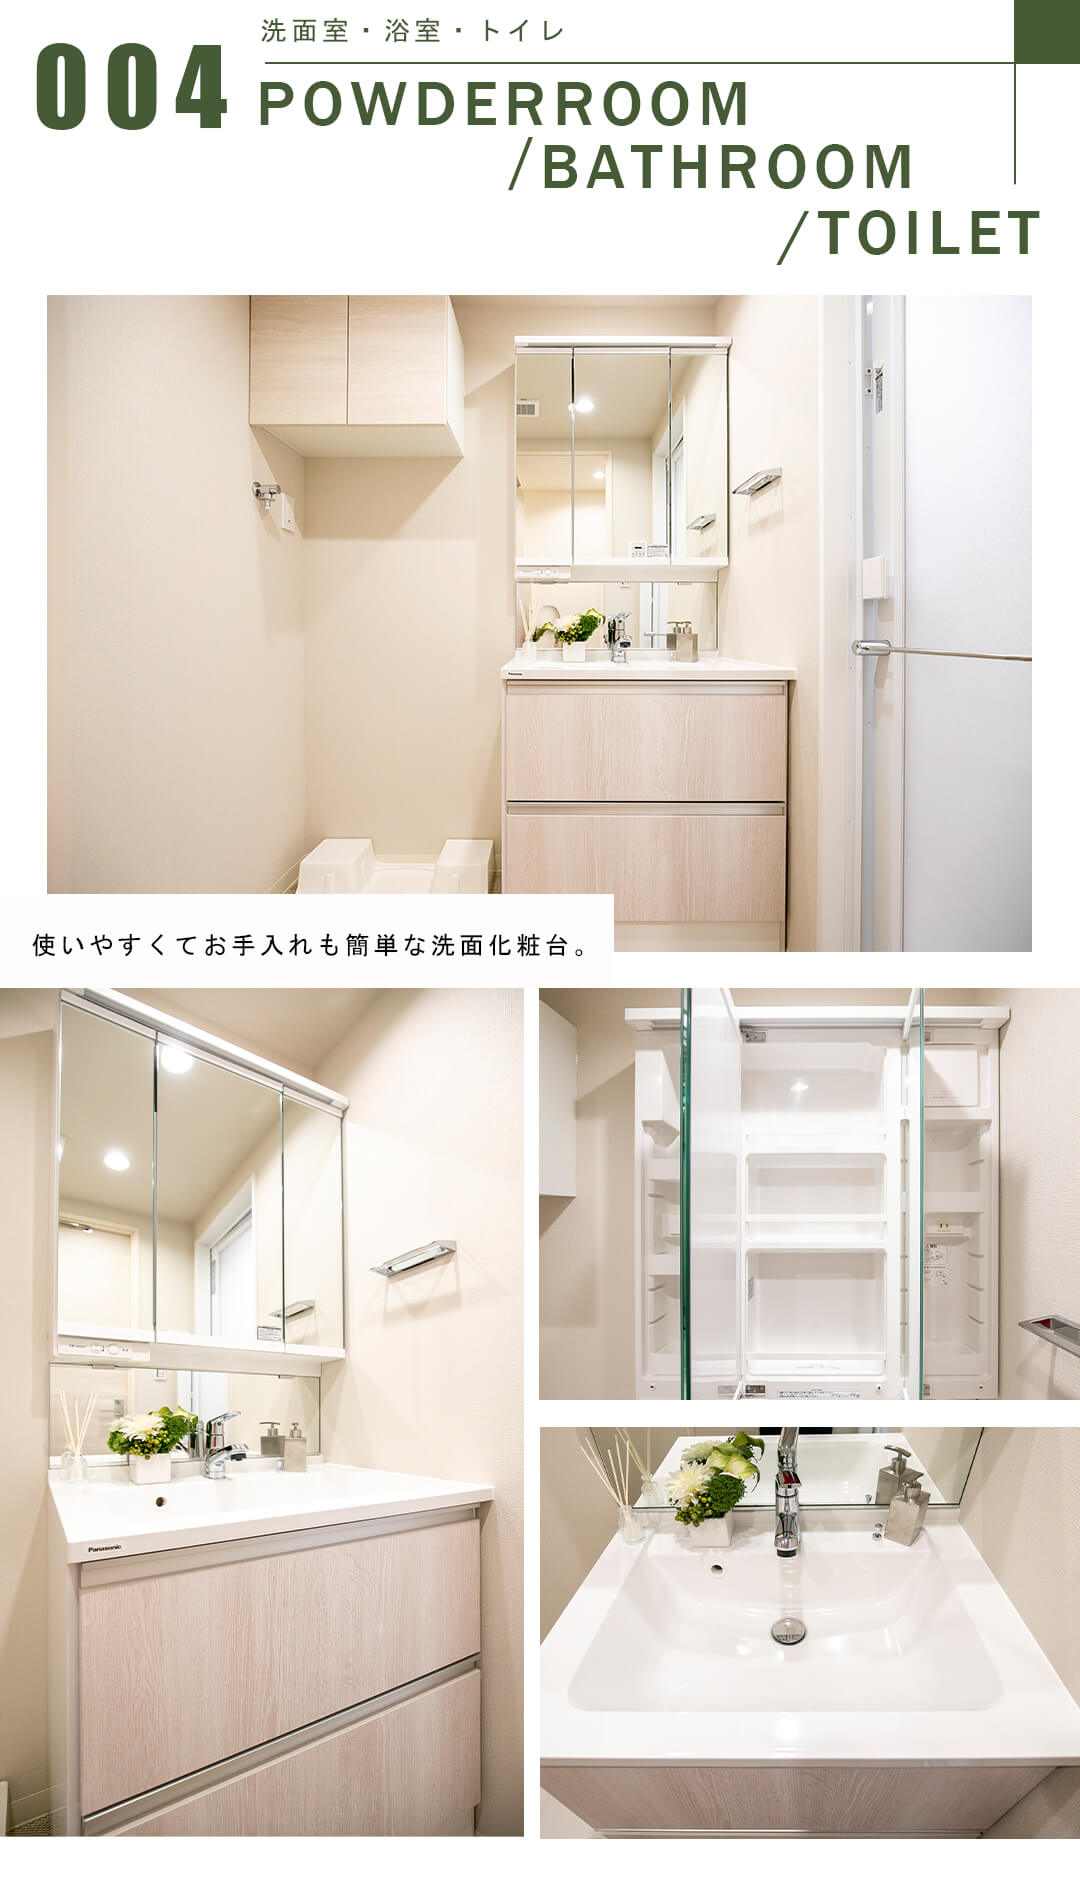 004洗面室,浴室,トイレ,POWDERROOM,BATHROOM,TOILET